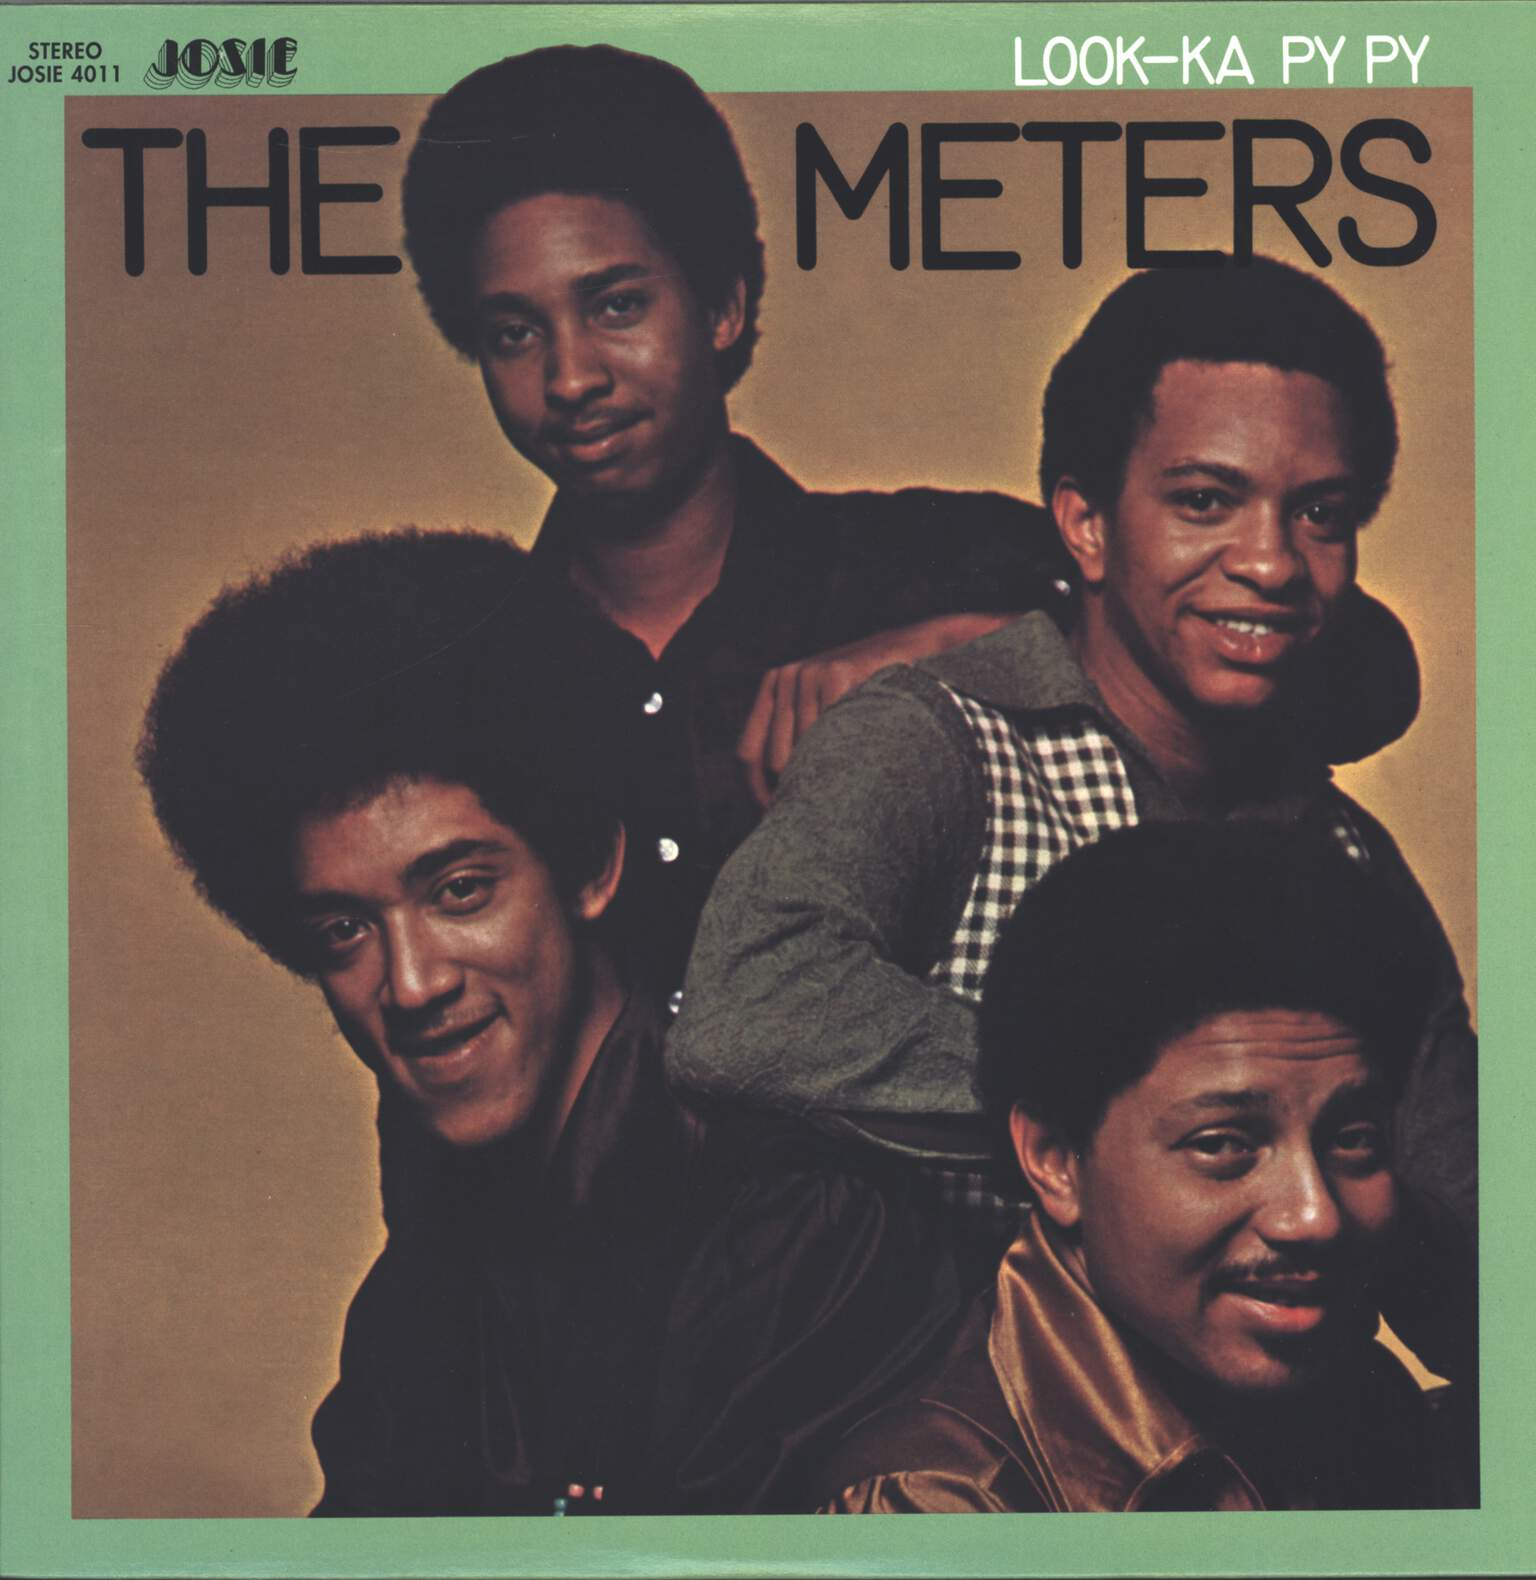 The Meters: Look-Ka Py Py, LP (Vinyl)